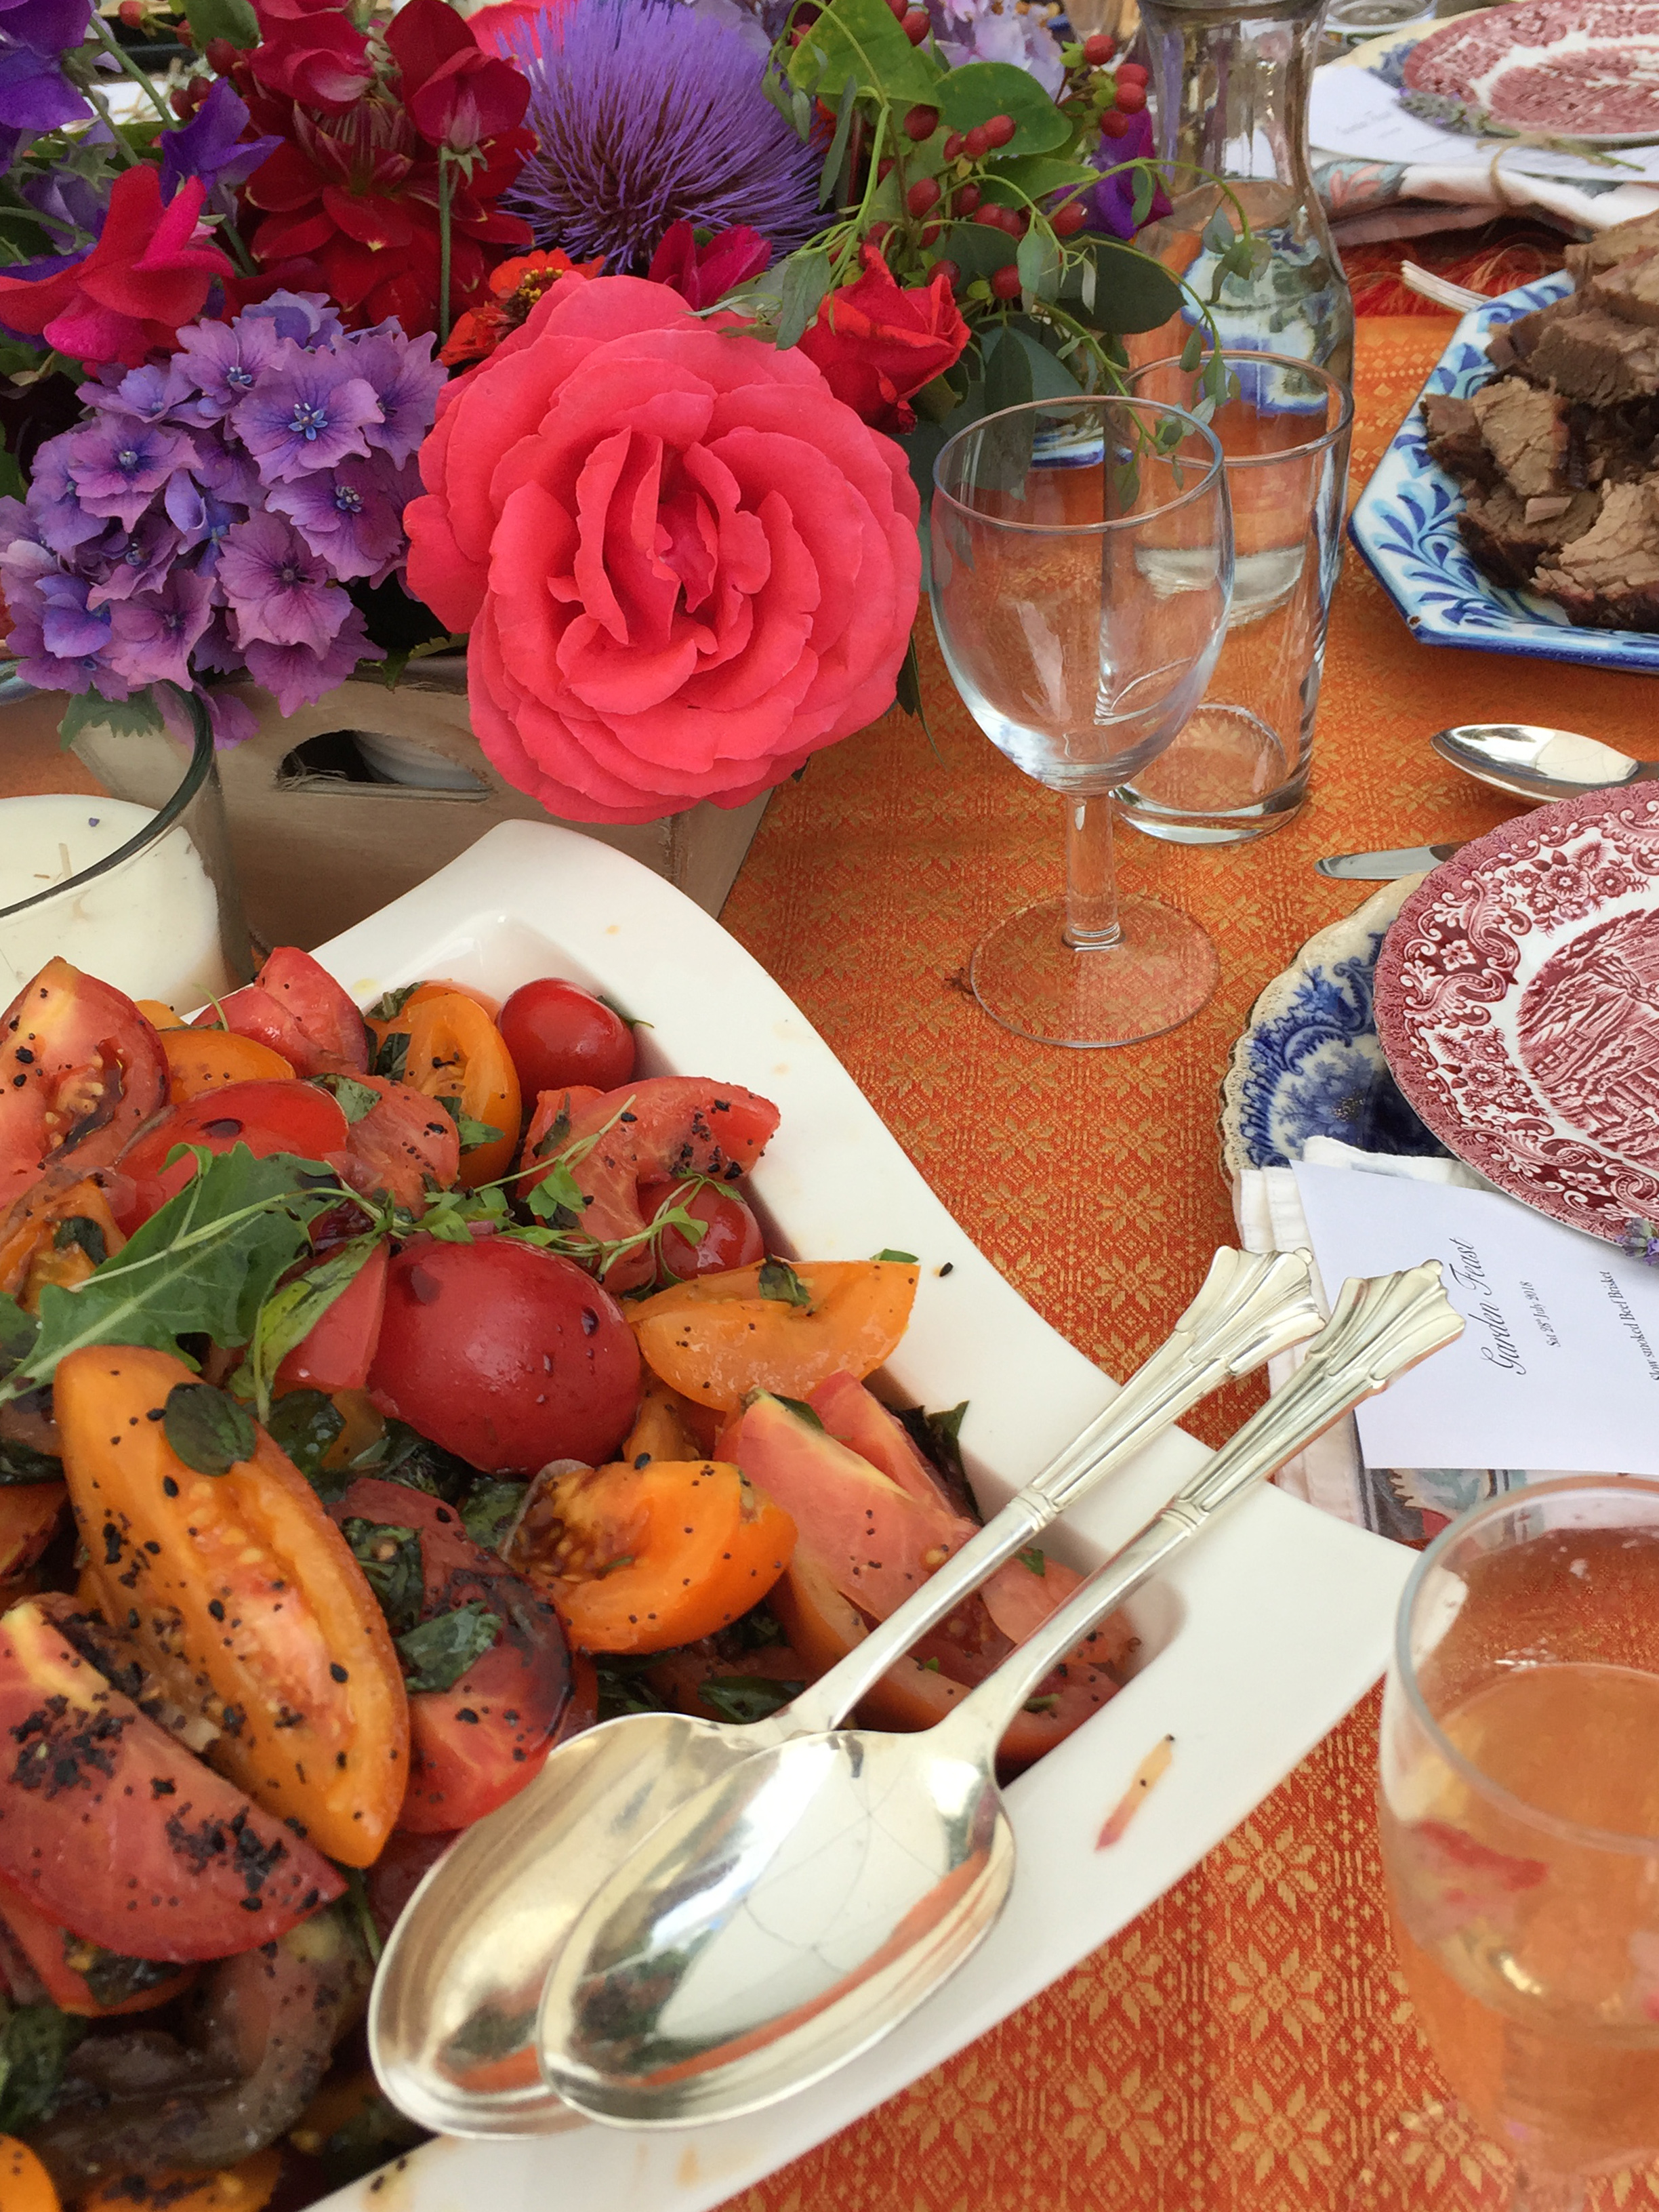 Uzma Bozai's top tips for creating an unforgettable garden party this bank holiday weekend.